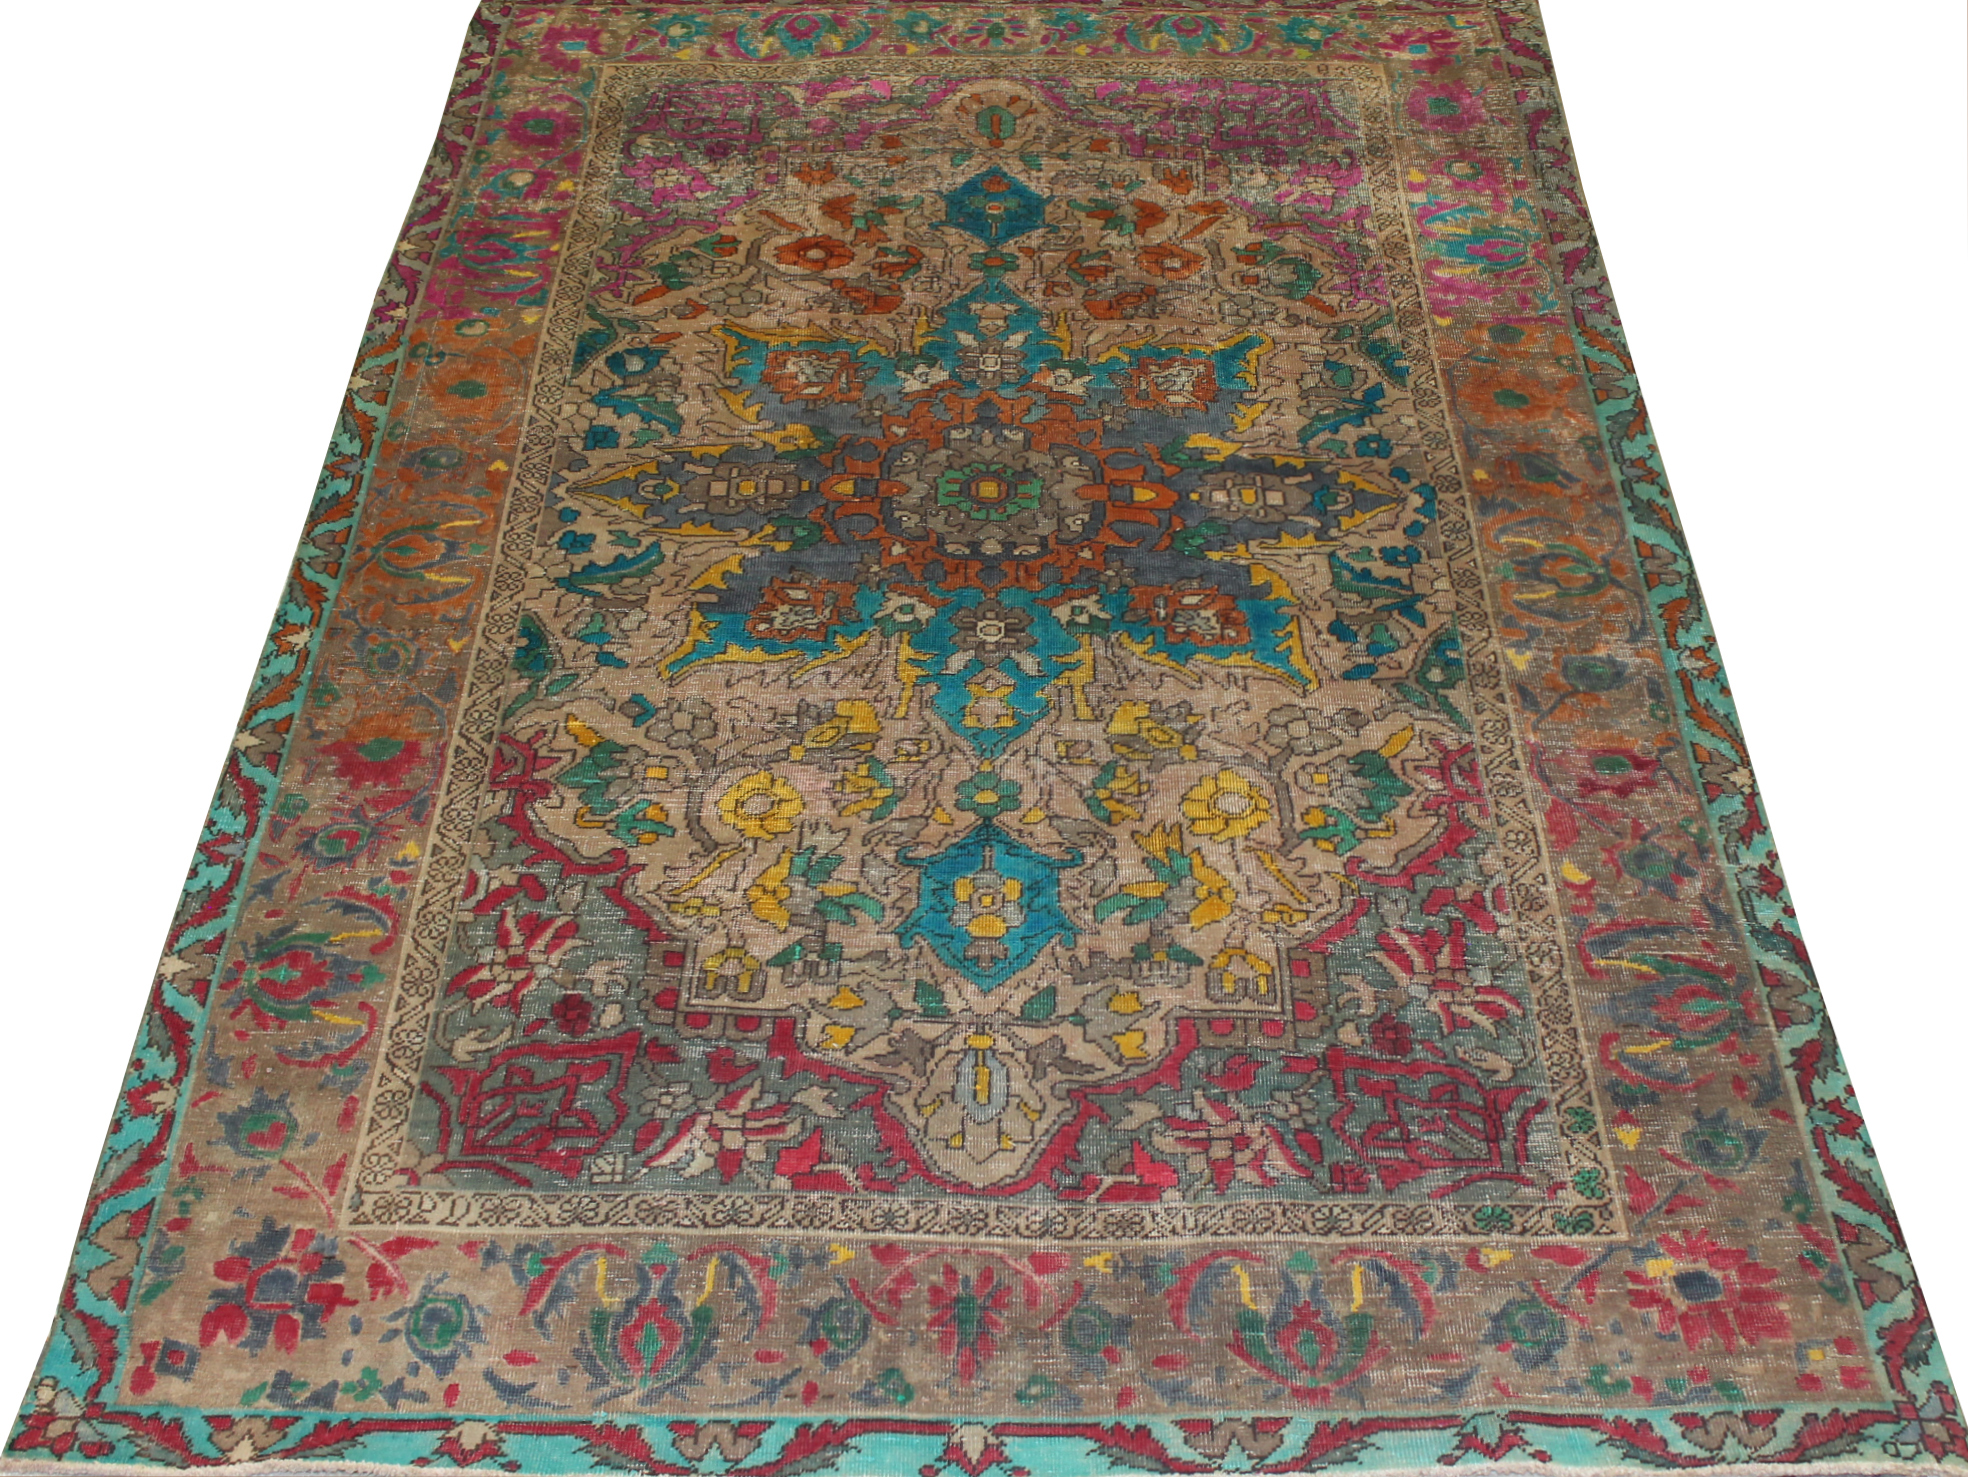 8x10 Vintage Hand Knotted Wool Area Rug - MR023740